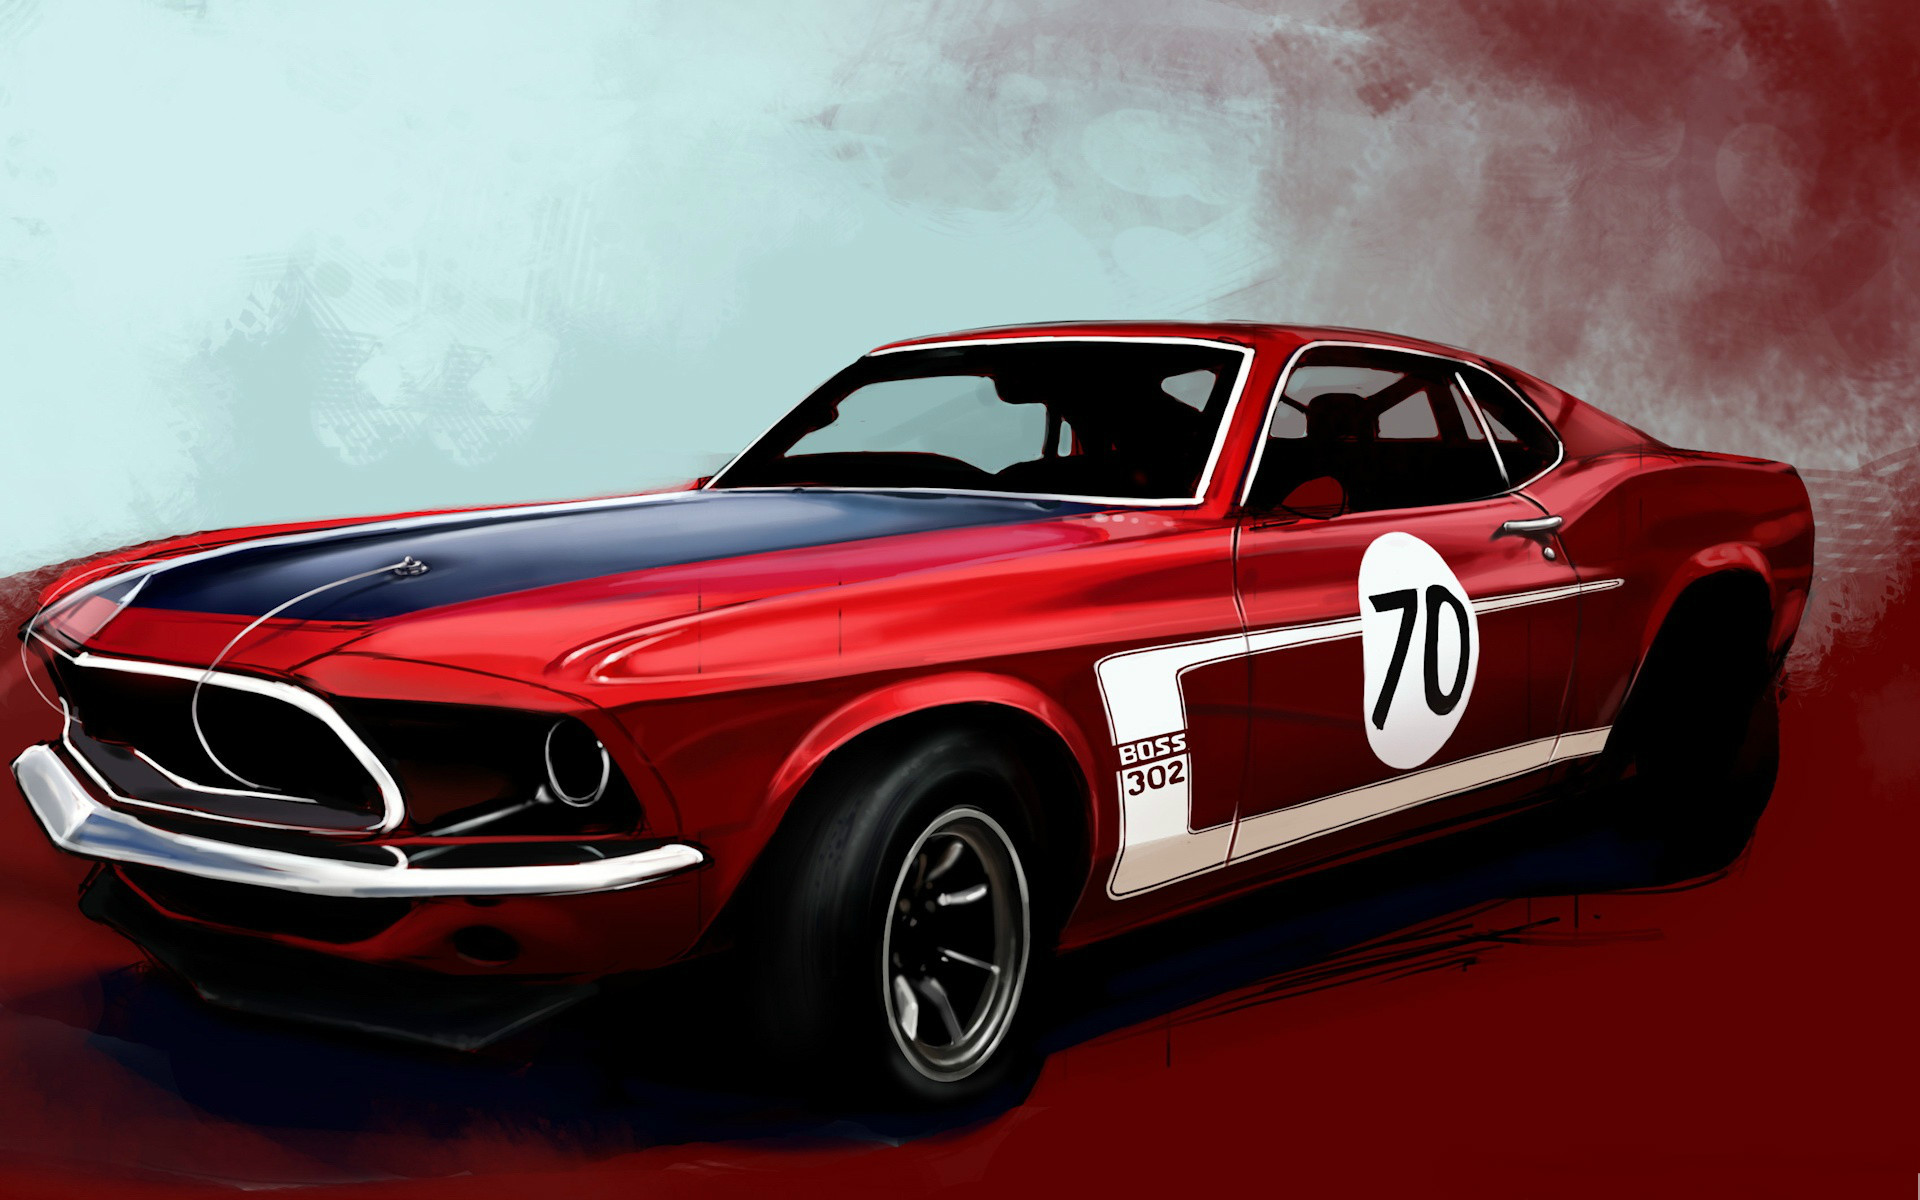 Ford Mustang Boss 302 Classic Muscle Car Wallpaper   HD 1920x1200